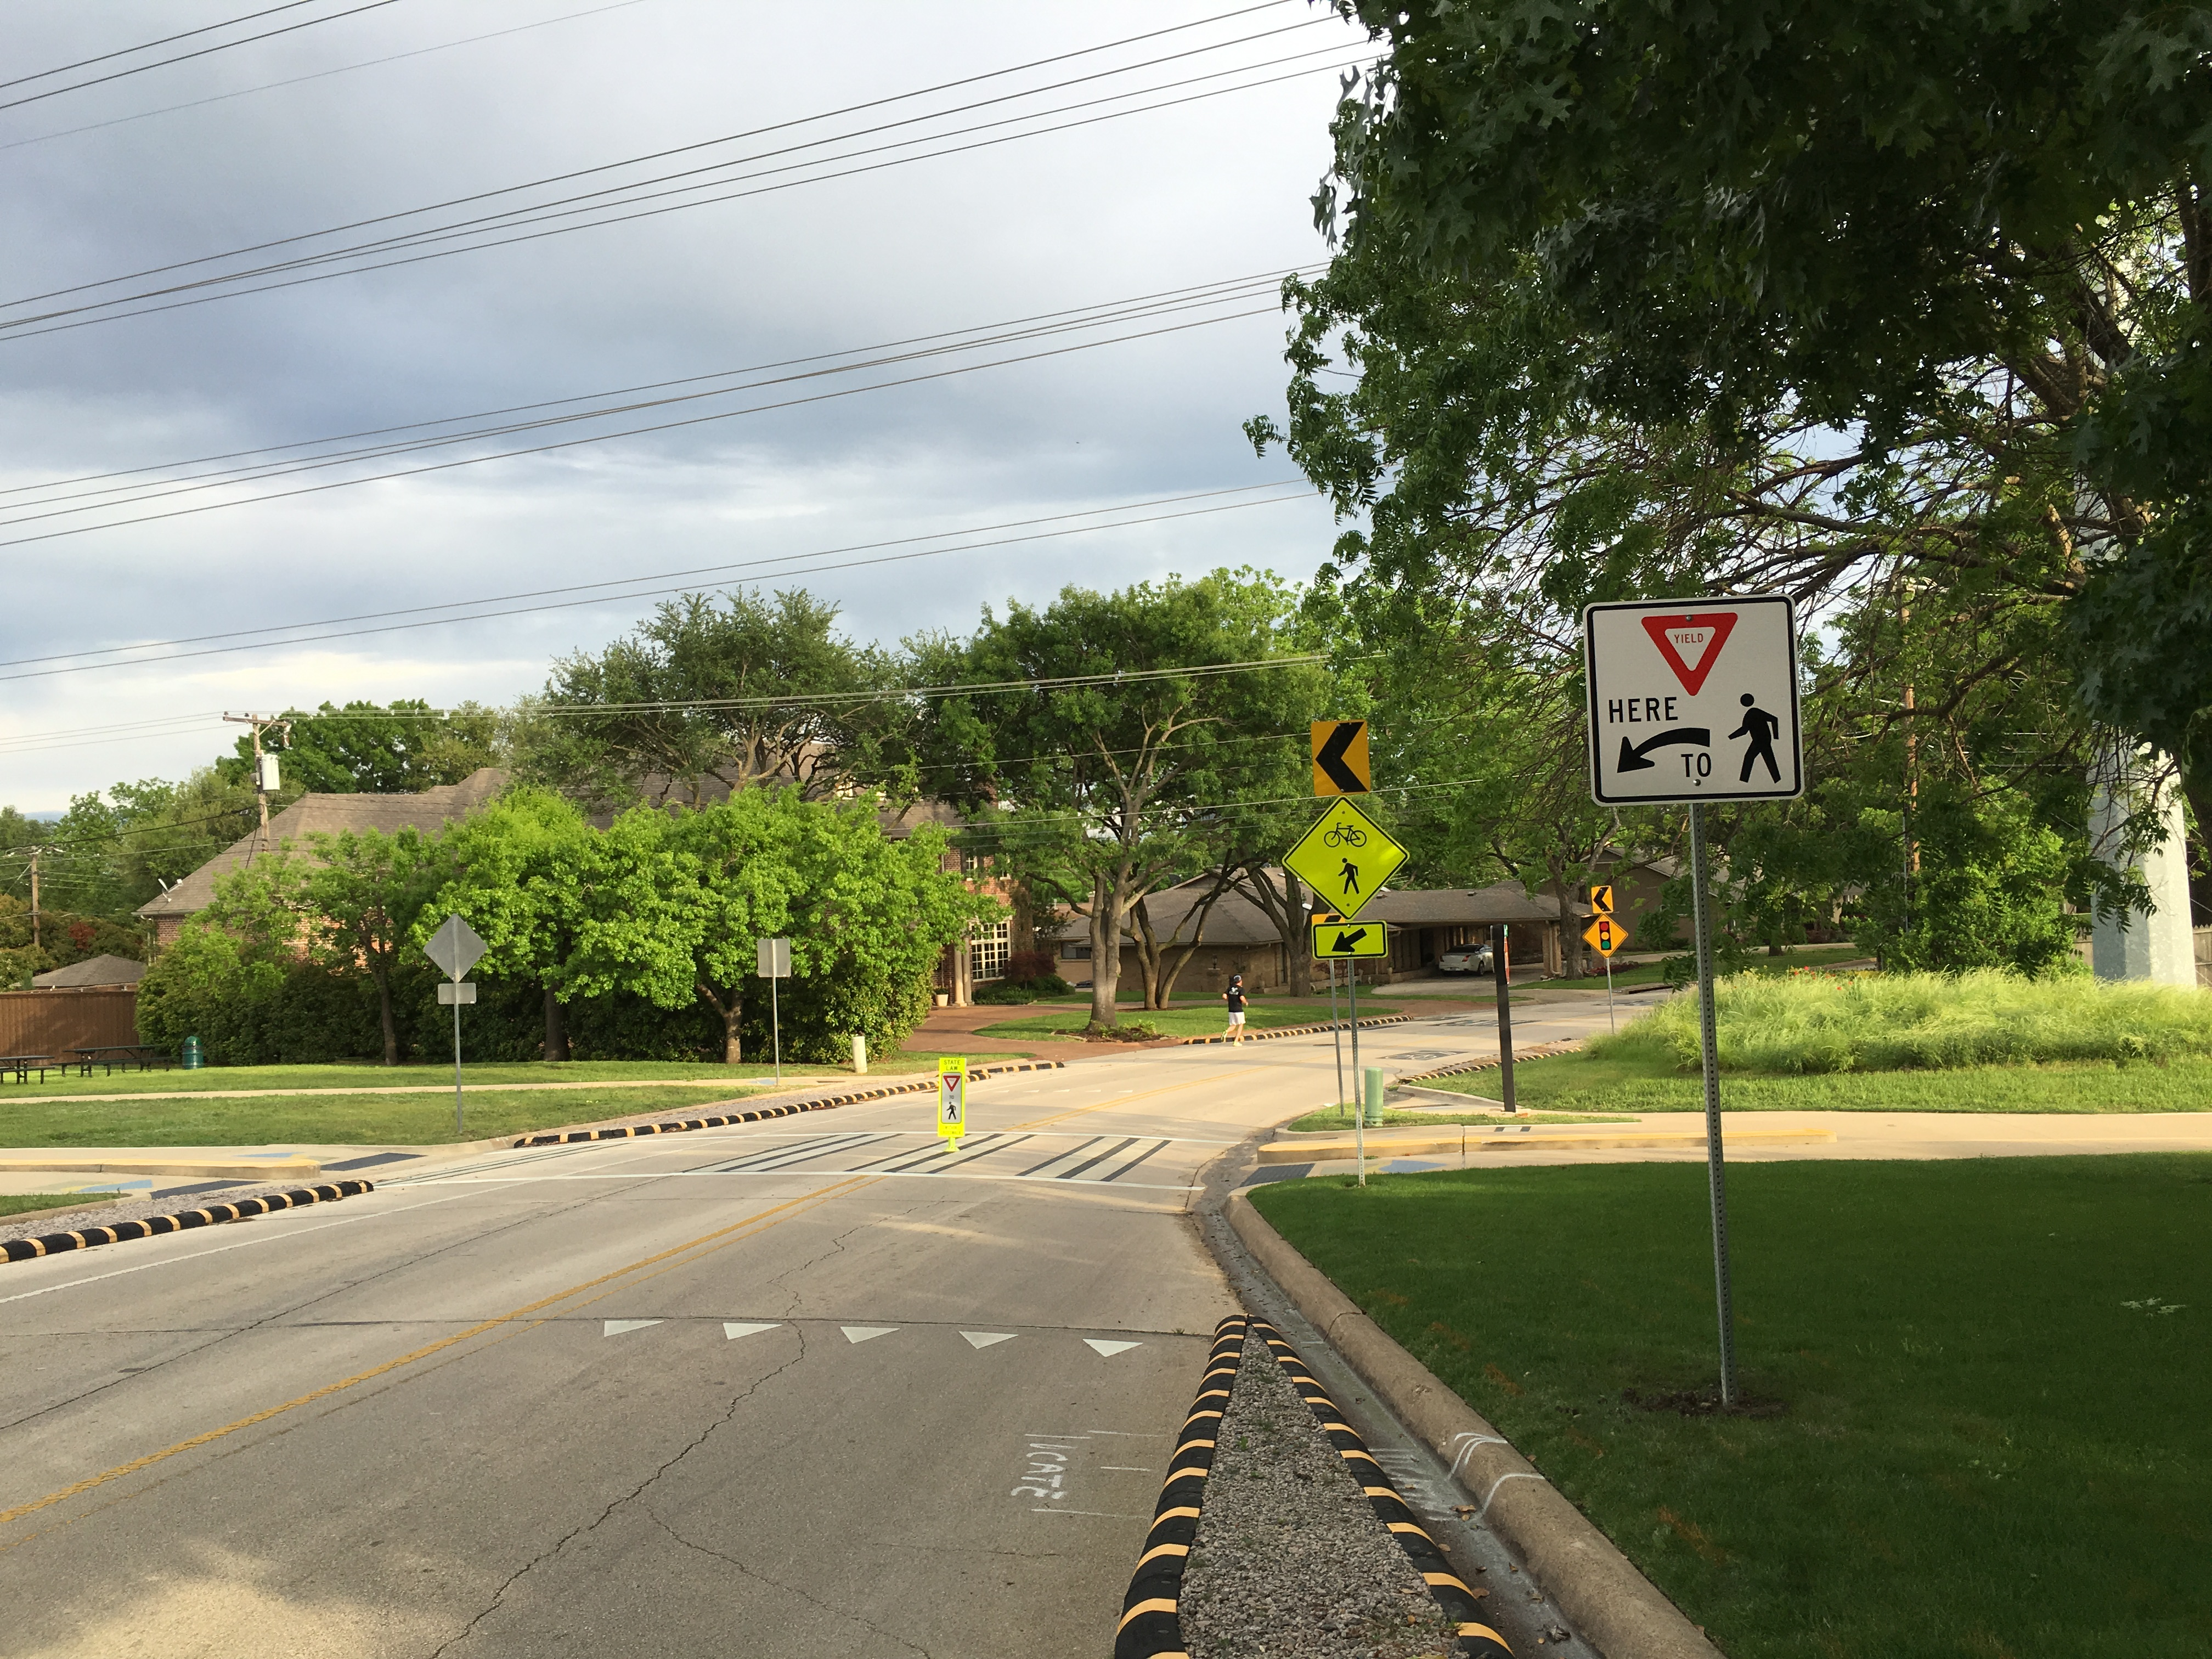 New yield signs and striping will help remind drivers on the Northaven Trail.